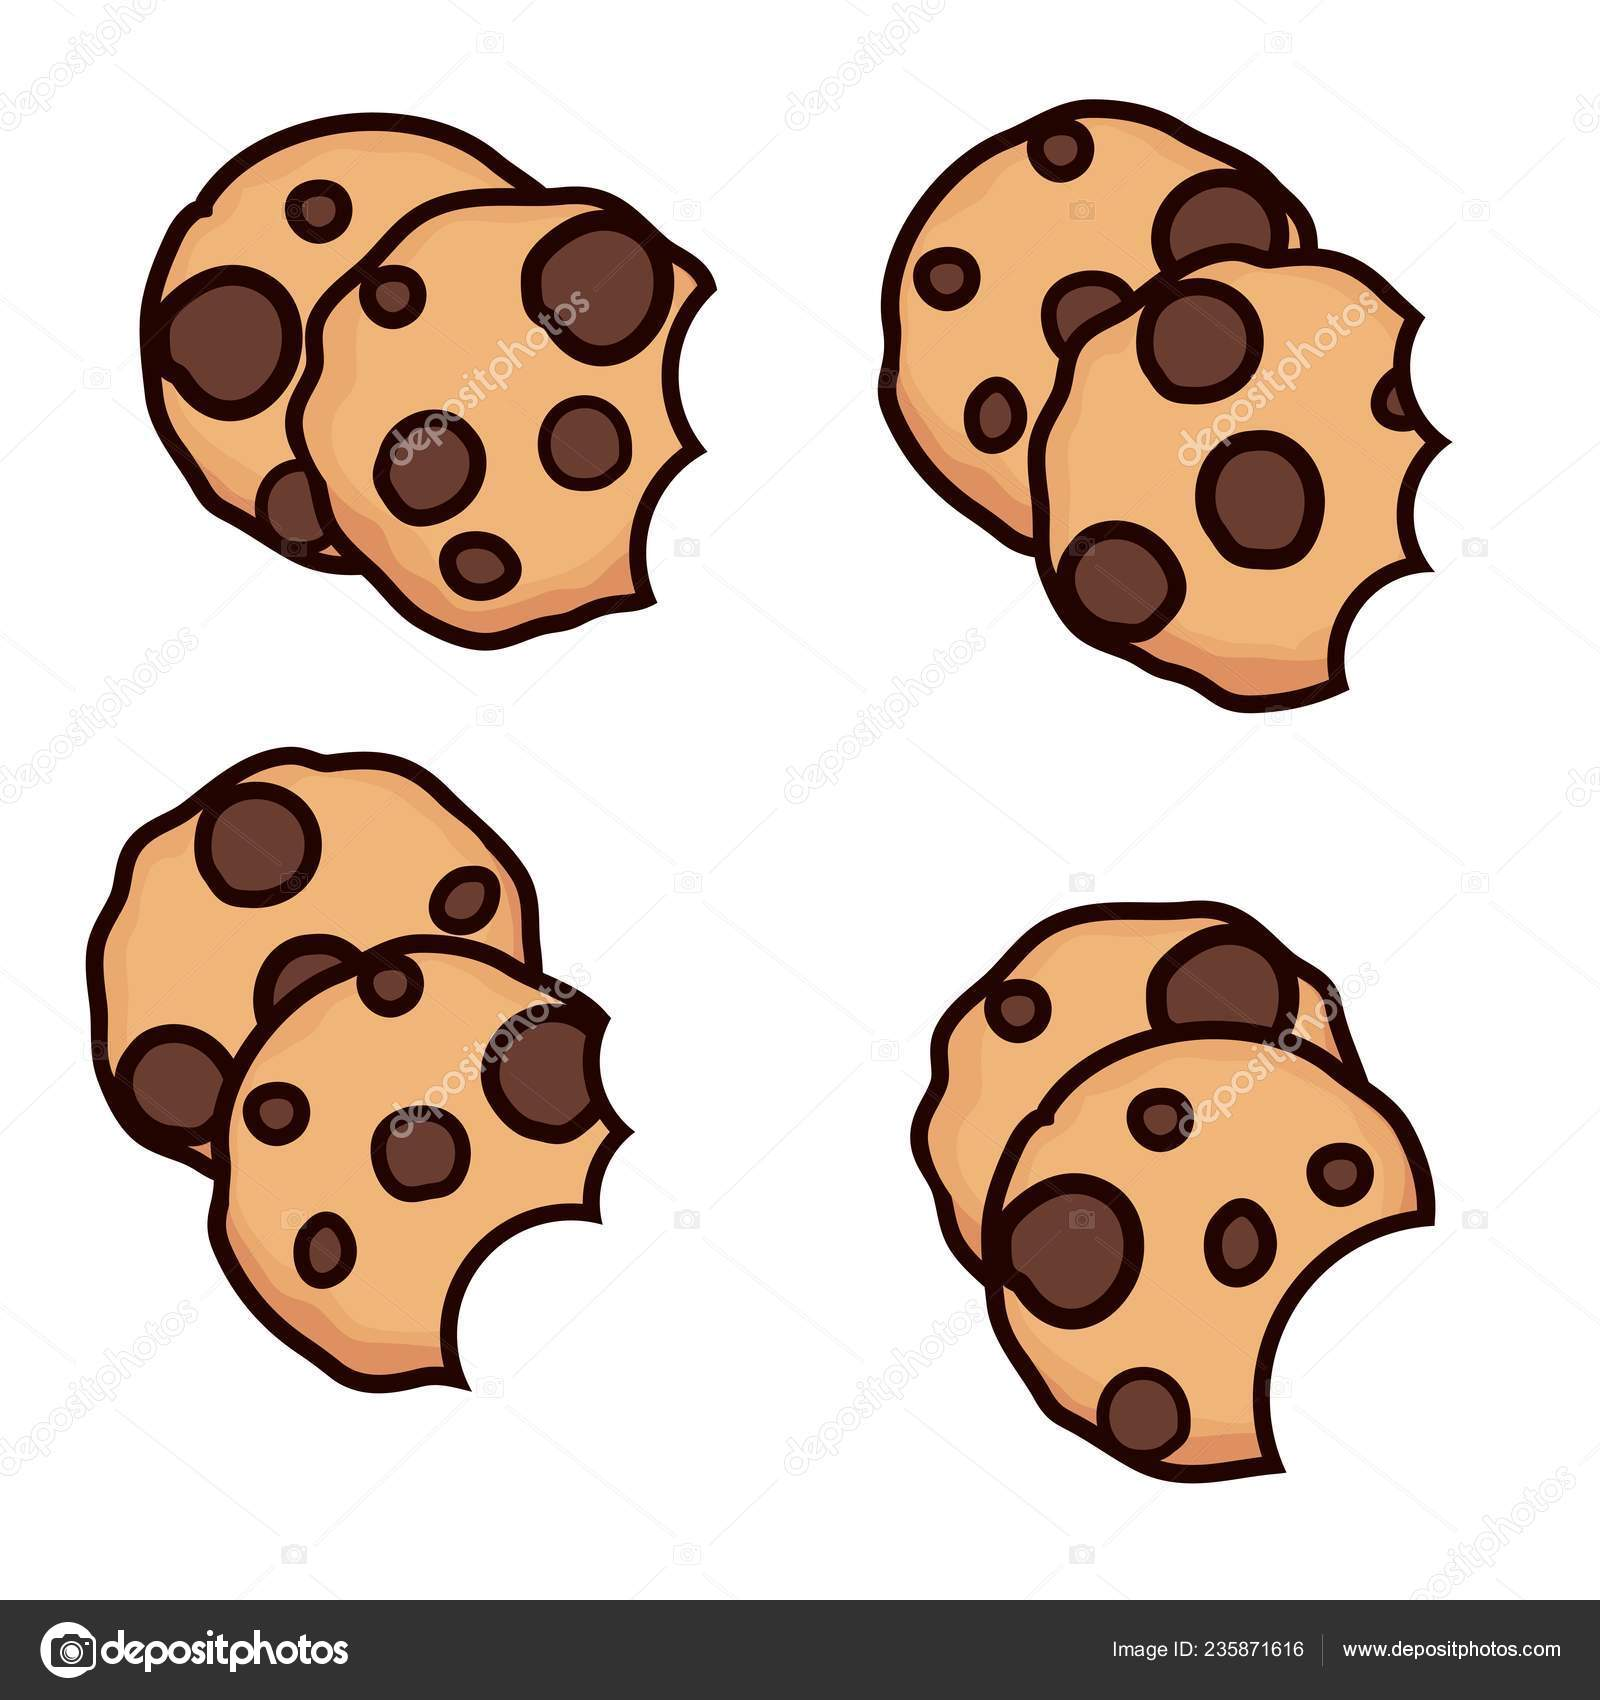 Clipart: chocolate chip cookies.